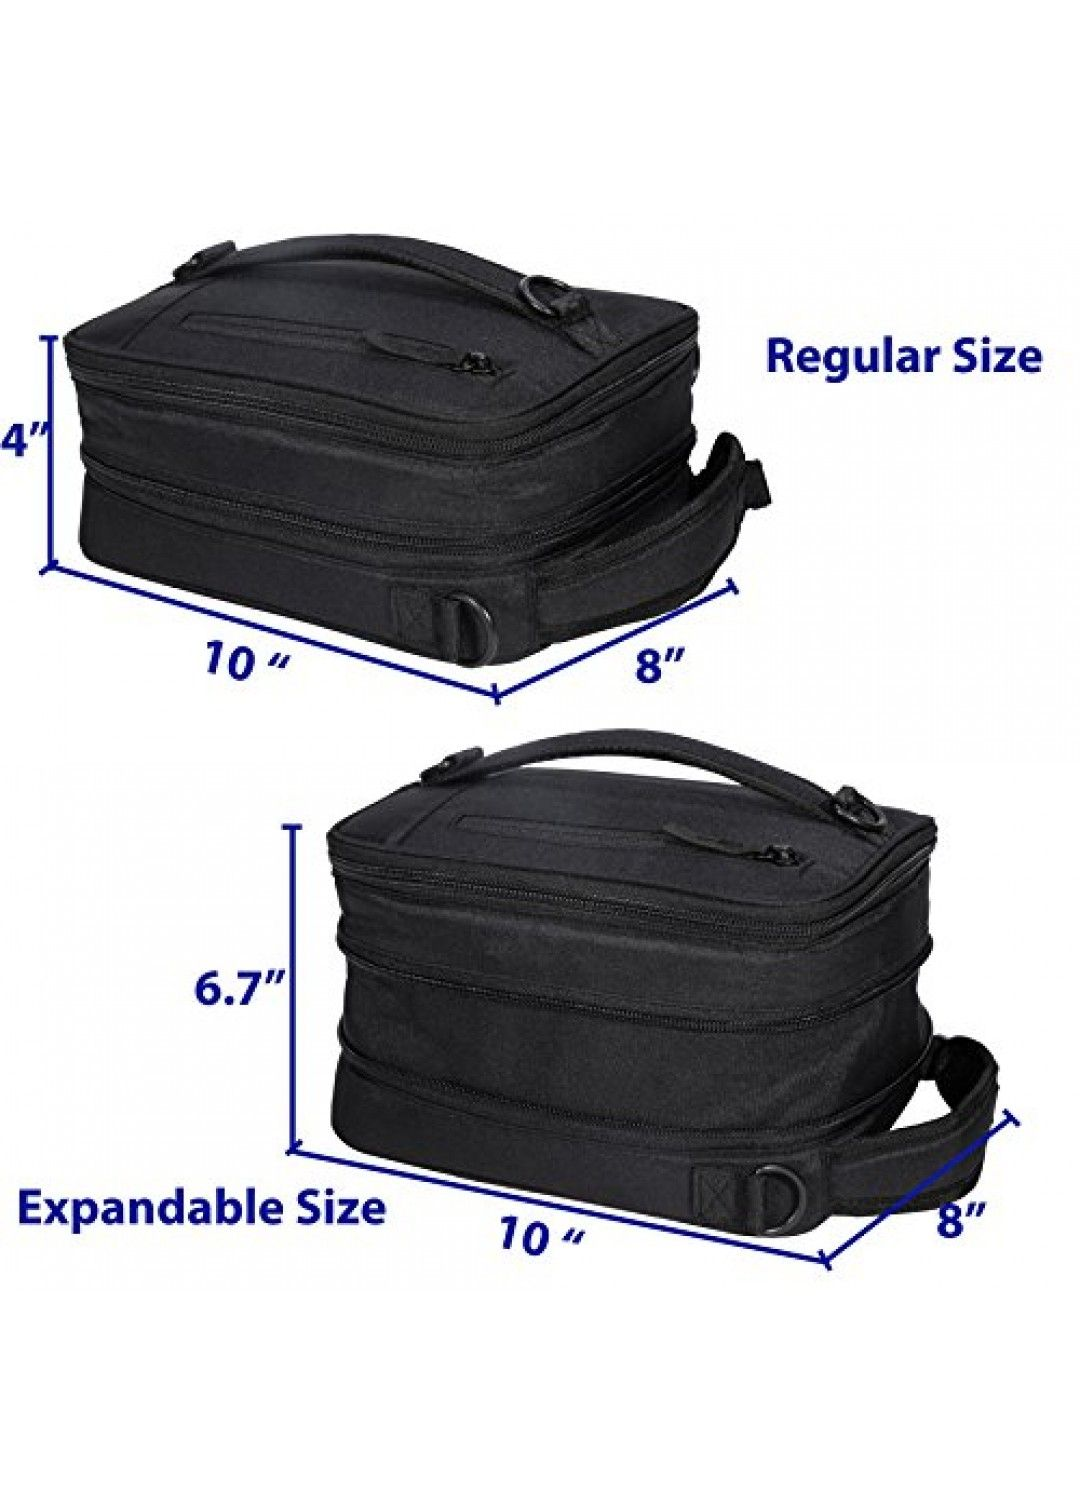 ced8a7d8786 MIER Insulated Lunch Box Bag Expandable Lunch Pack for Men, Women and Kids,  Black